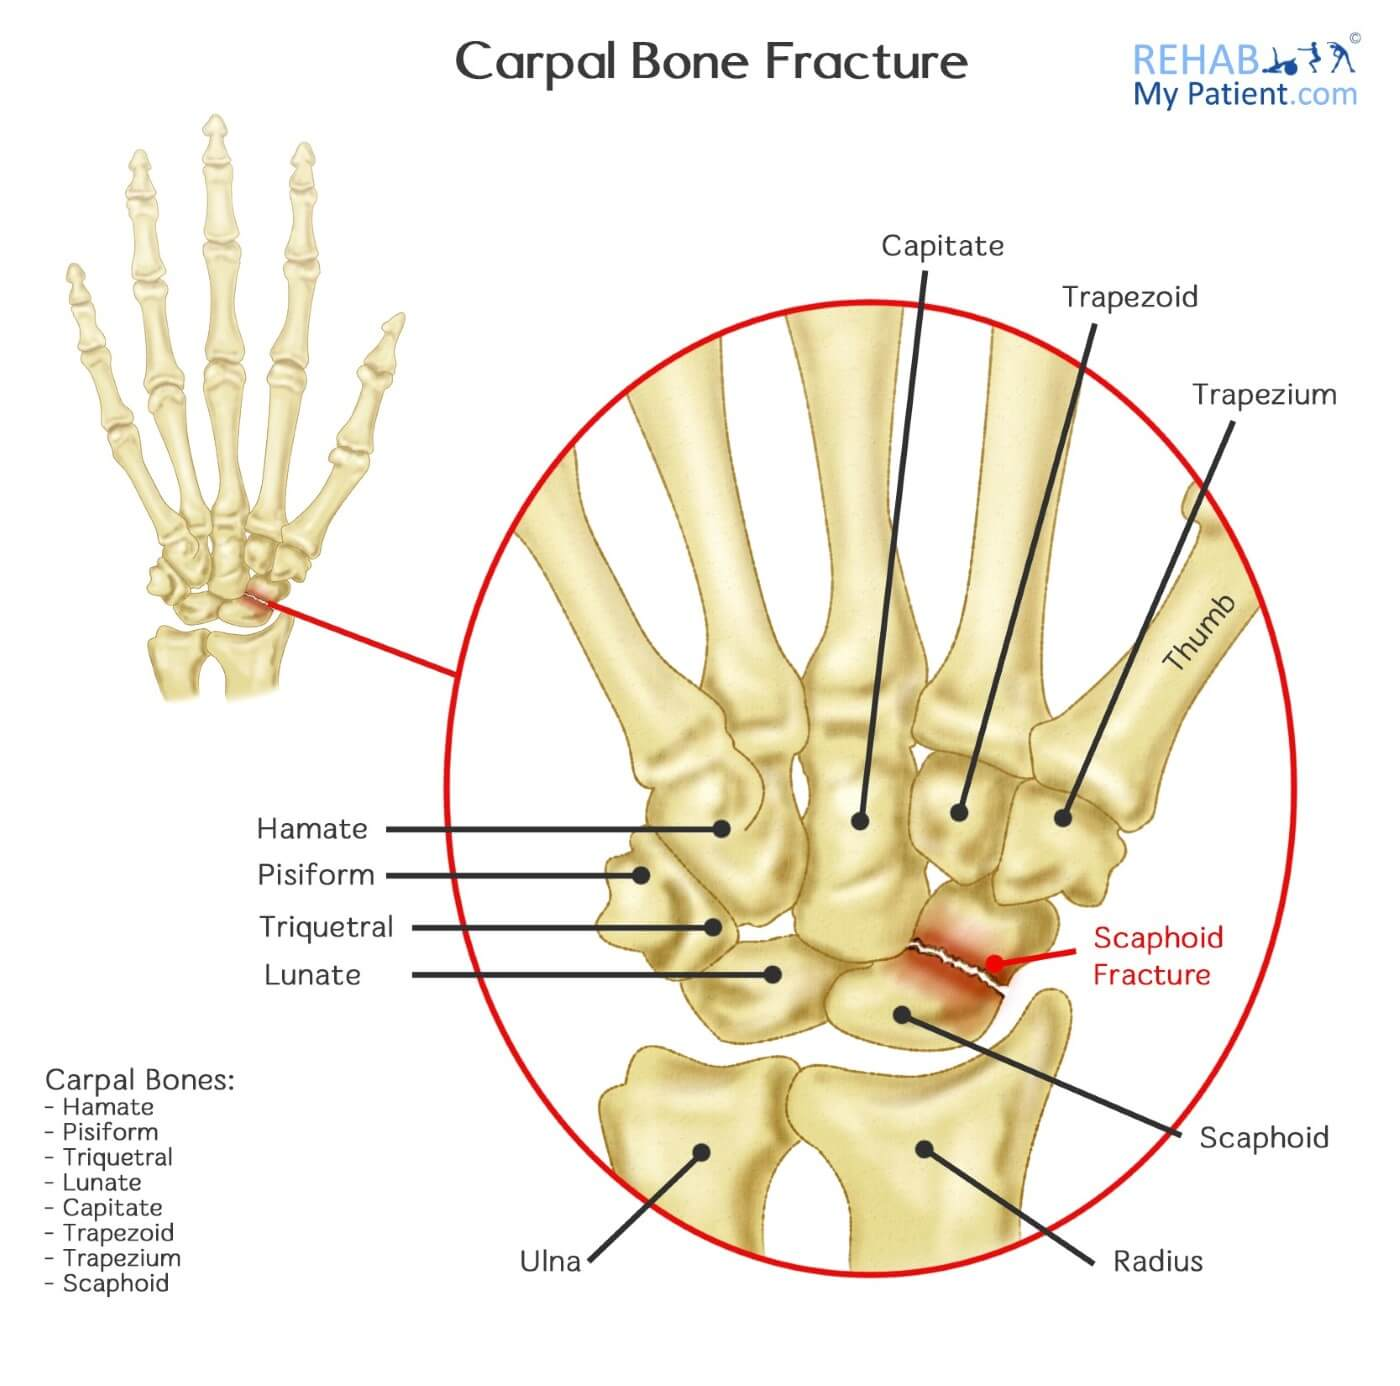 carpal bone fracture | rehab my patient, Sphenoid